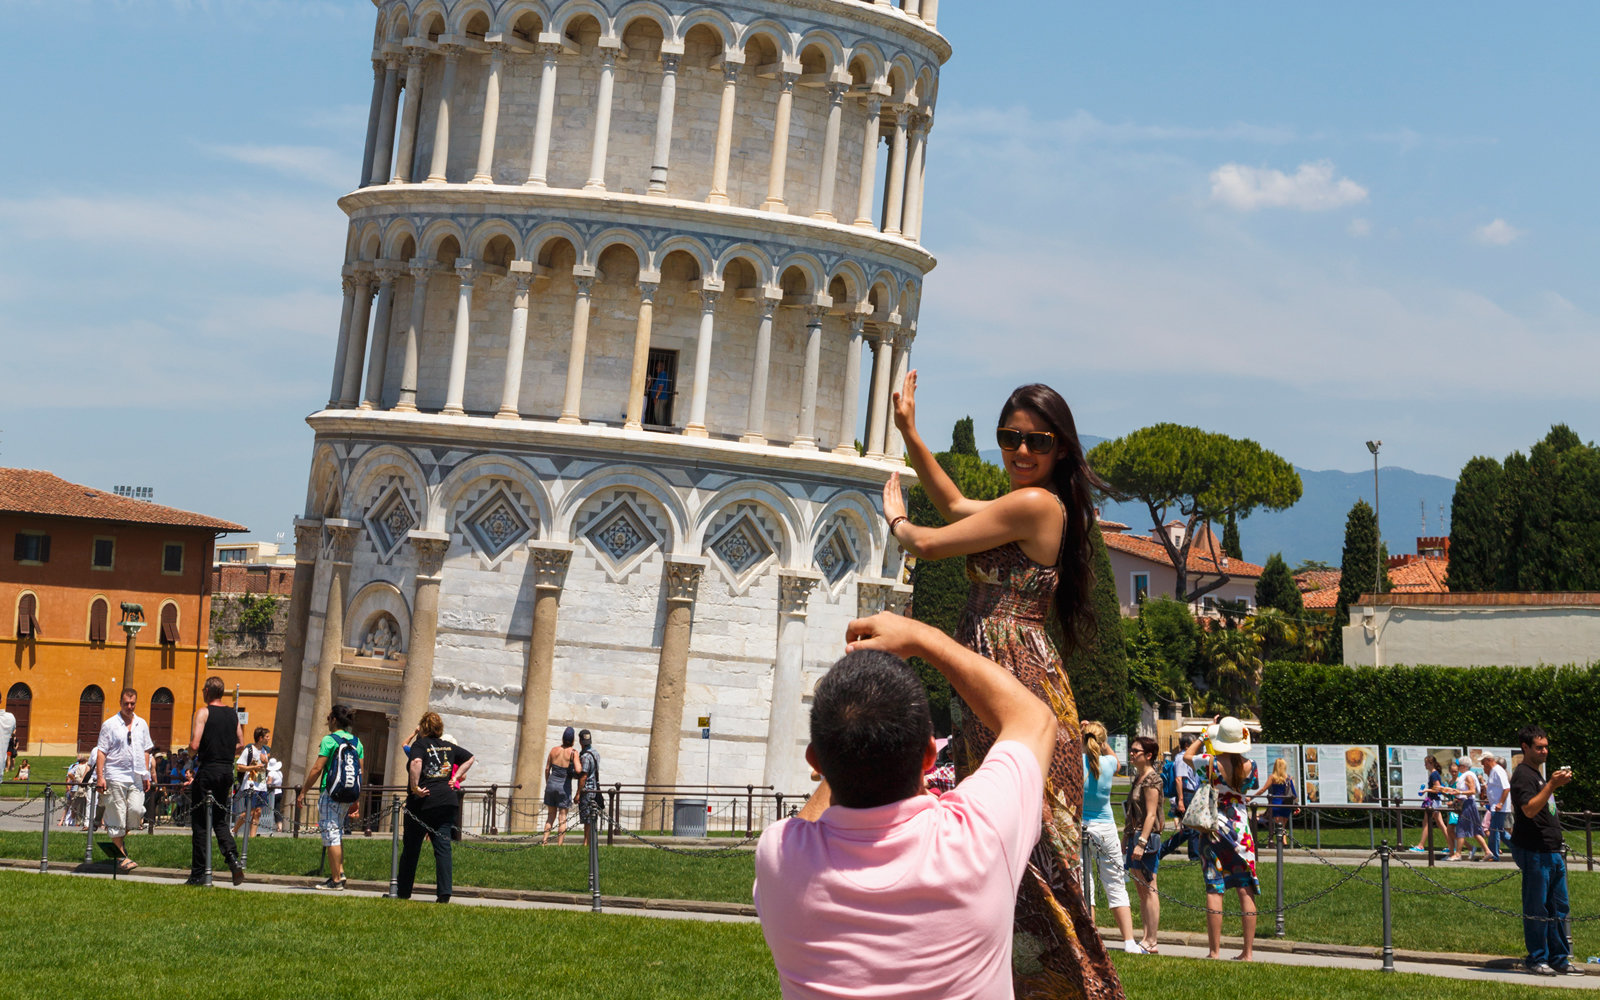 A woman poses as though she is holding up the Tower of Pisa.